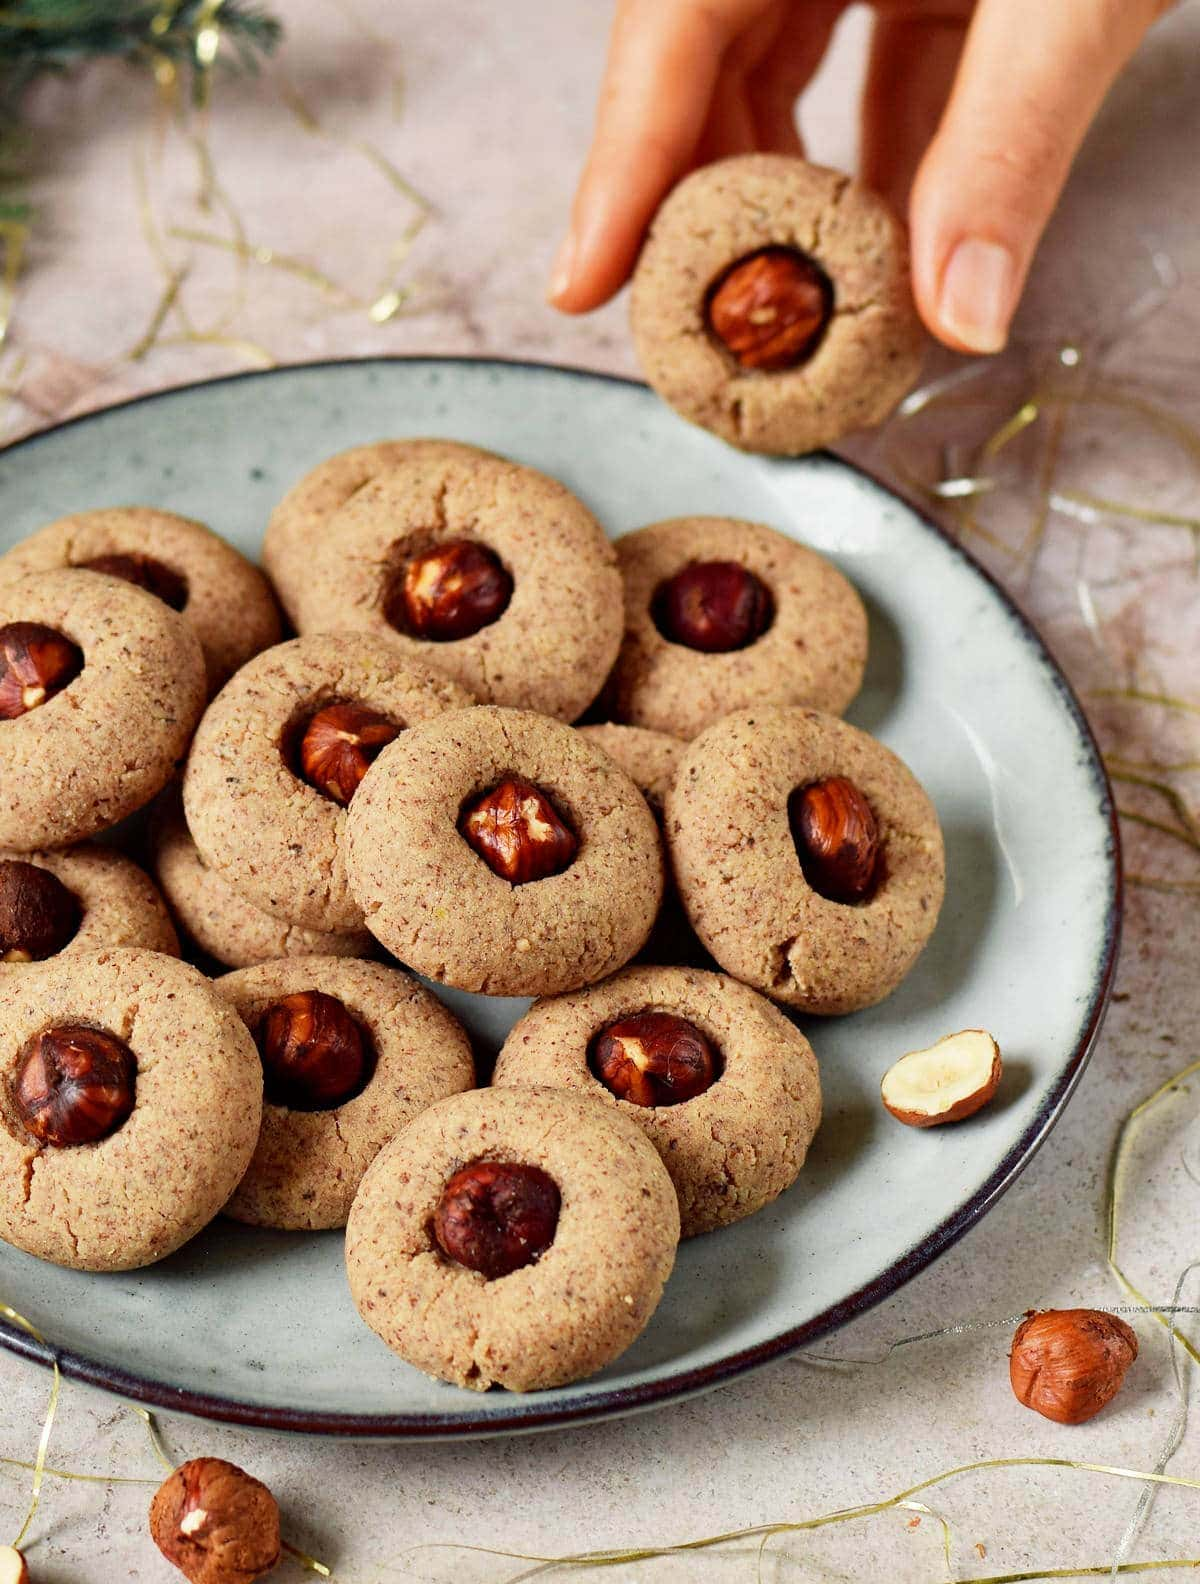 hand holding a vegan thumbprint cookie with hazelnuts